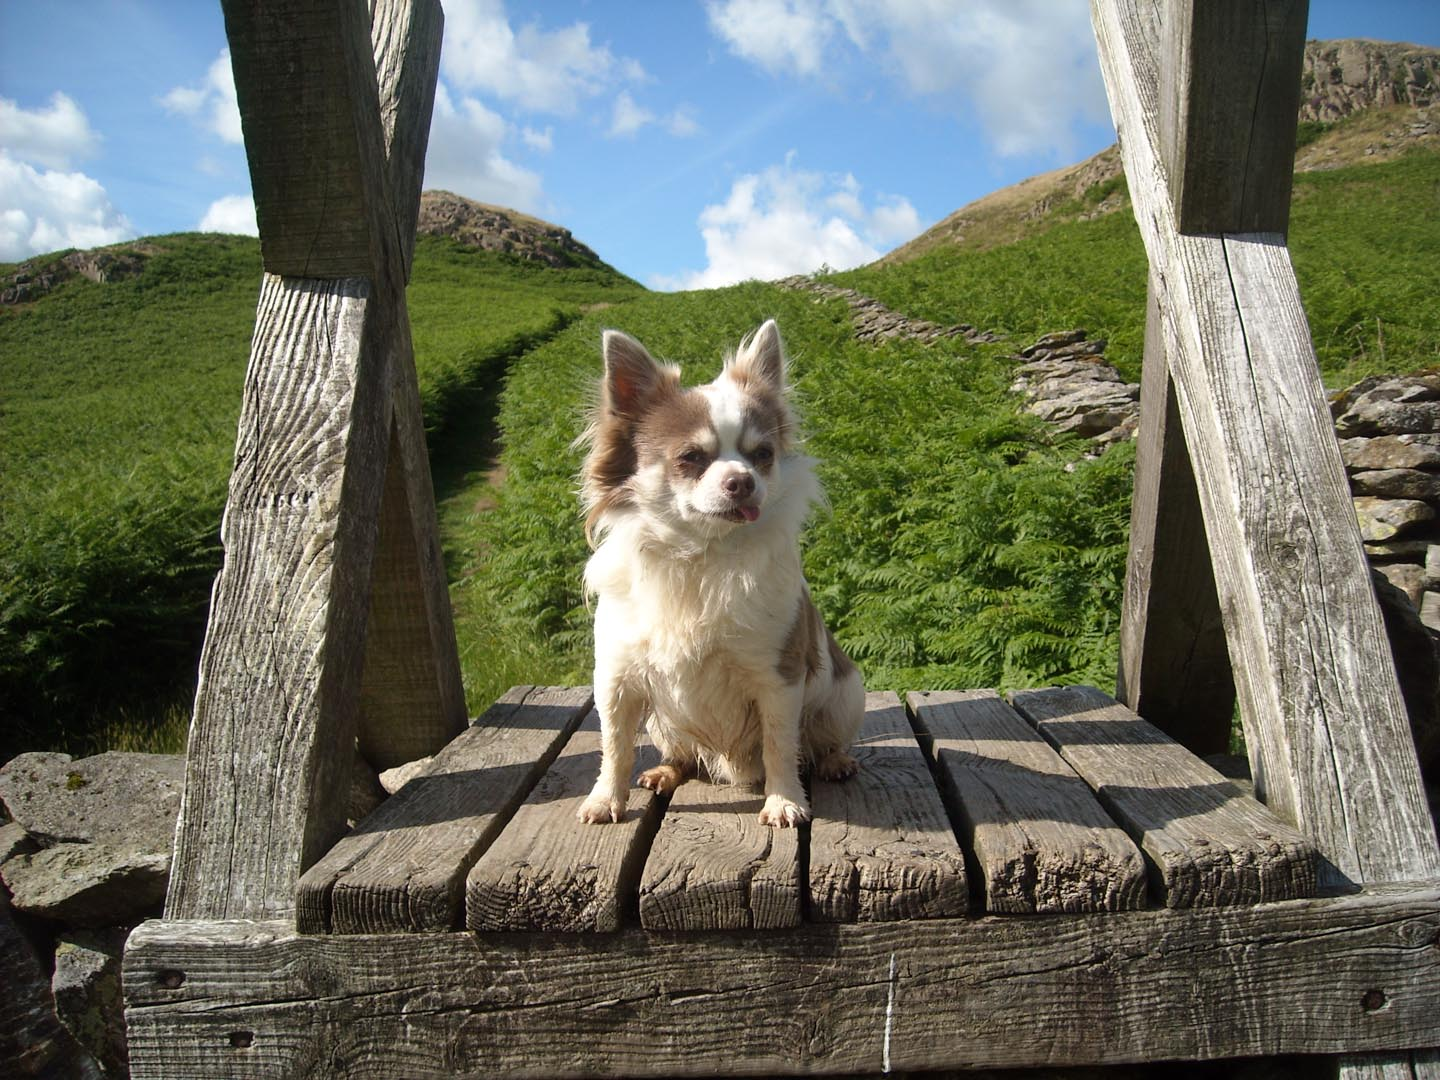 Dog Friendly accommodation at Nest Barn